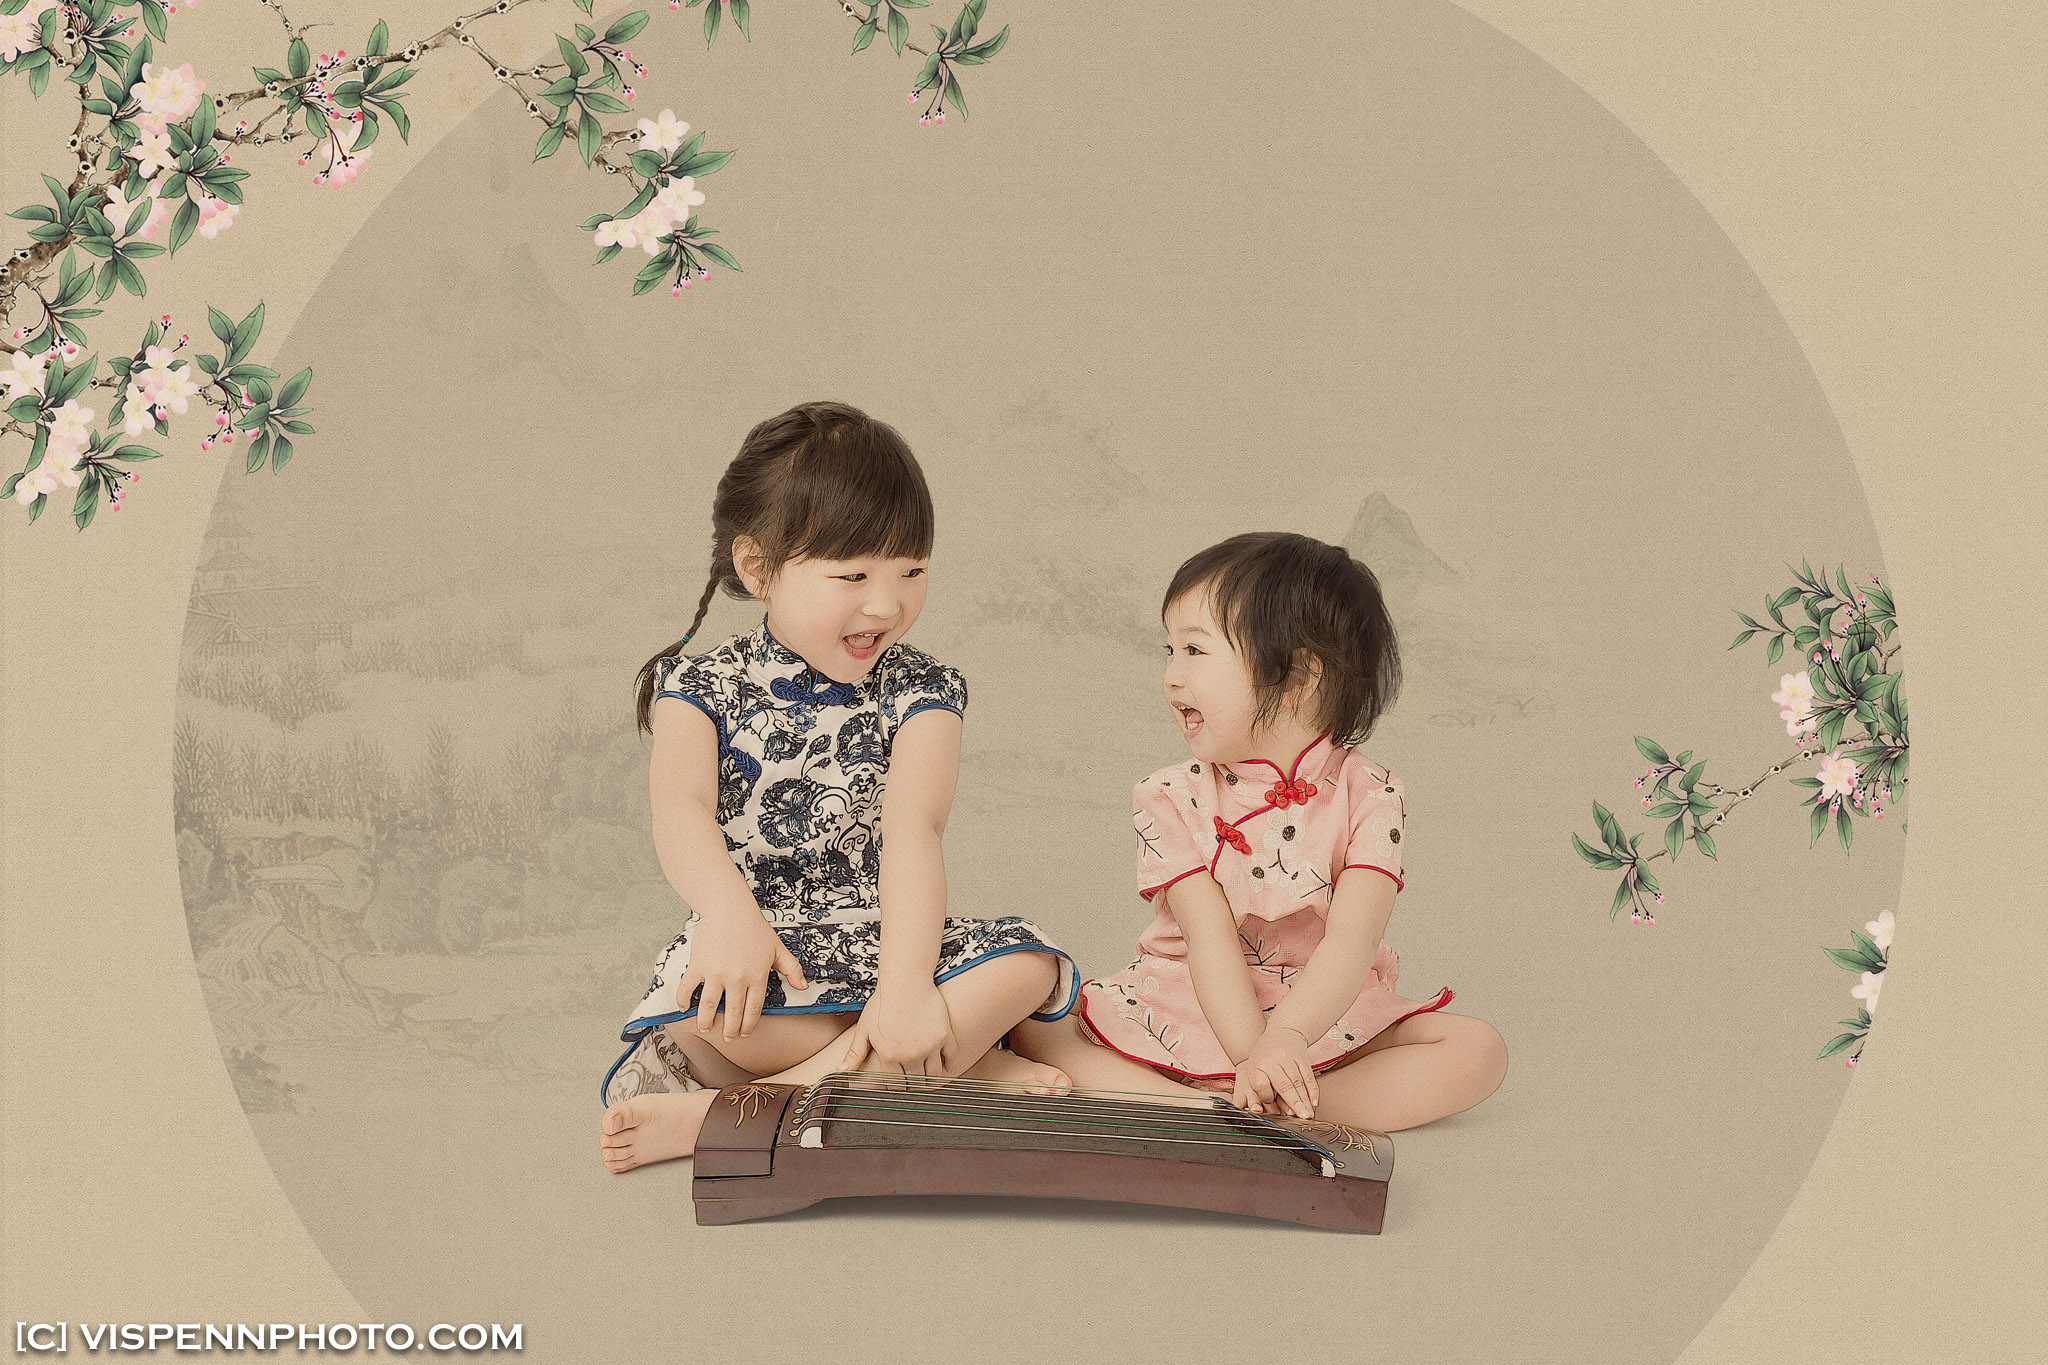 Melbourne Newborn Baby Family Photo BaoBao VISPENN 墨尔本 儿童 宝宝 百天照 满月照 孕妇照 全家福 KIDS VISPENN Julianne 0143